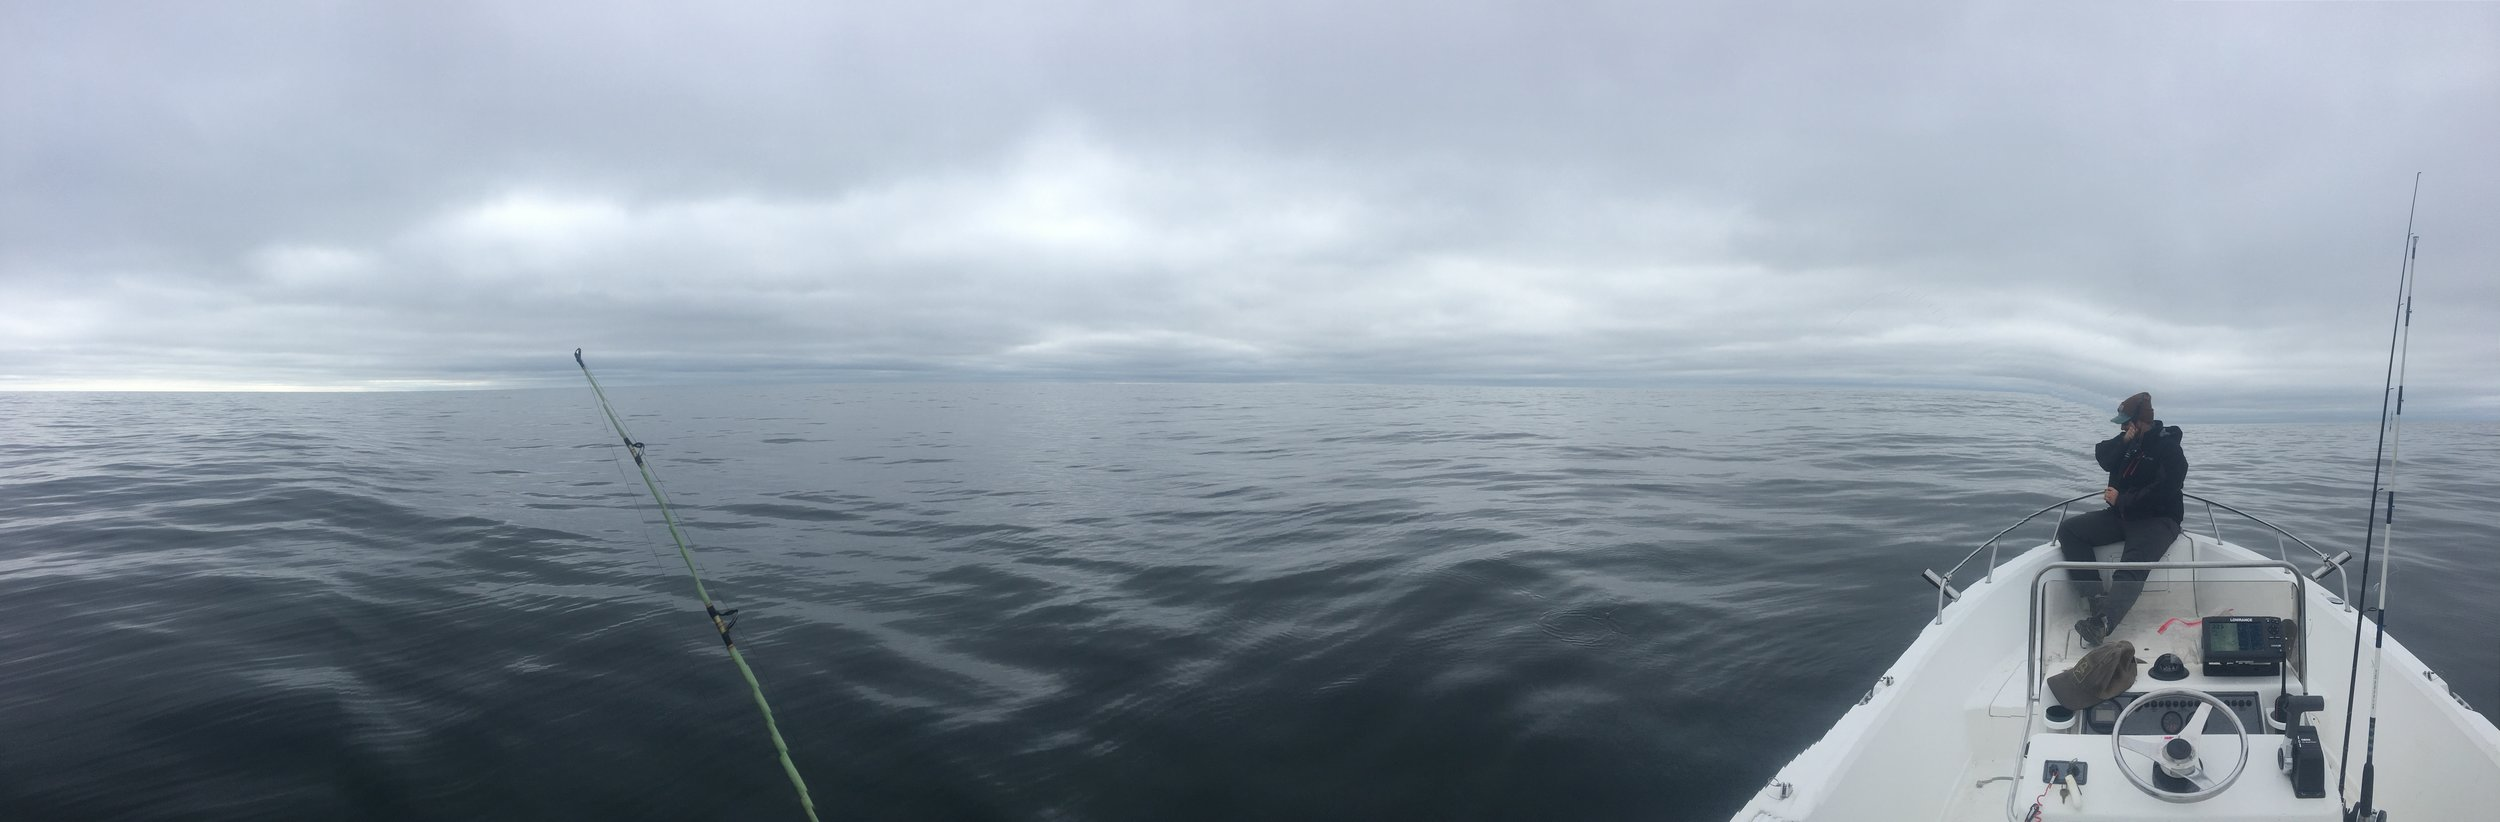 The day was gray, with both sea and sky exhibiting a greasy calm in the morning.